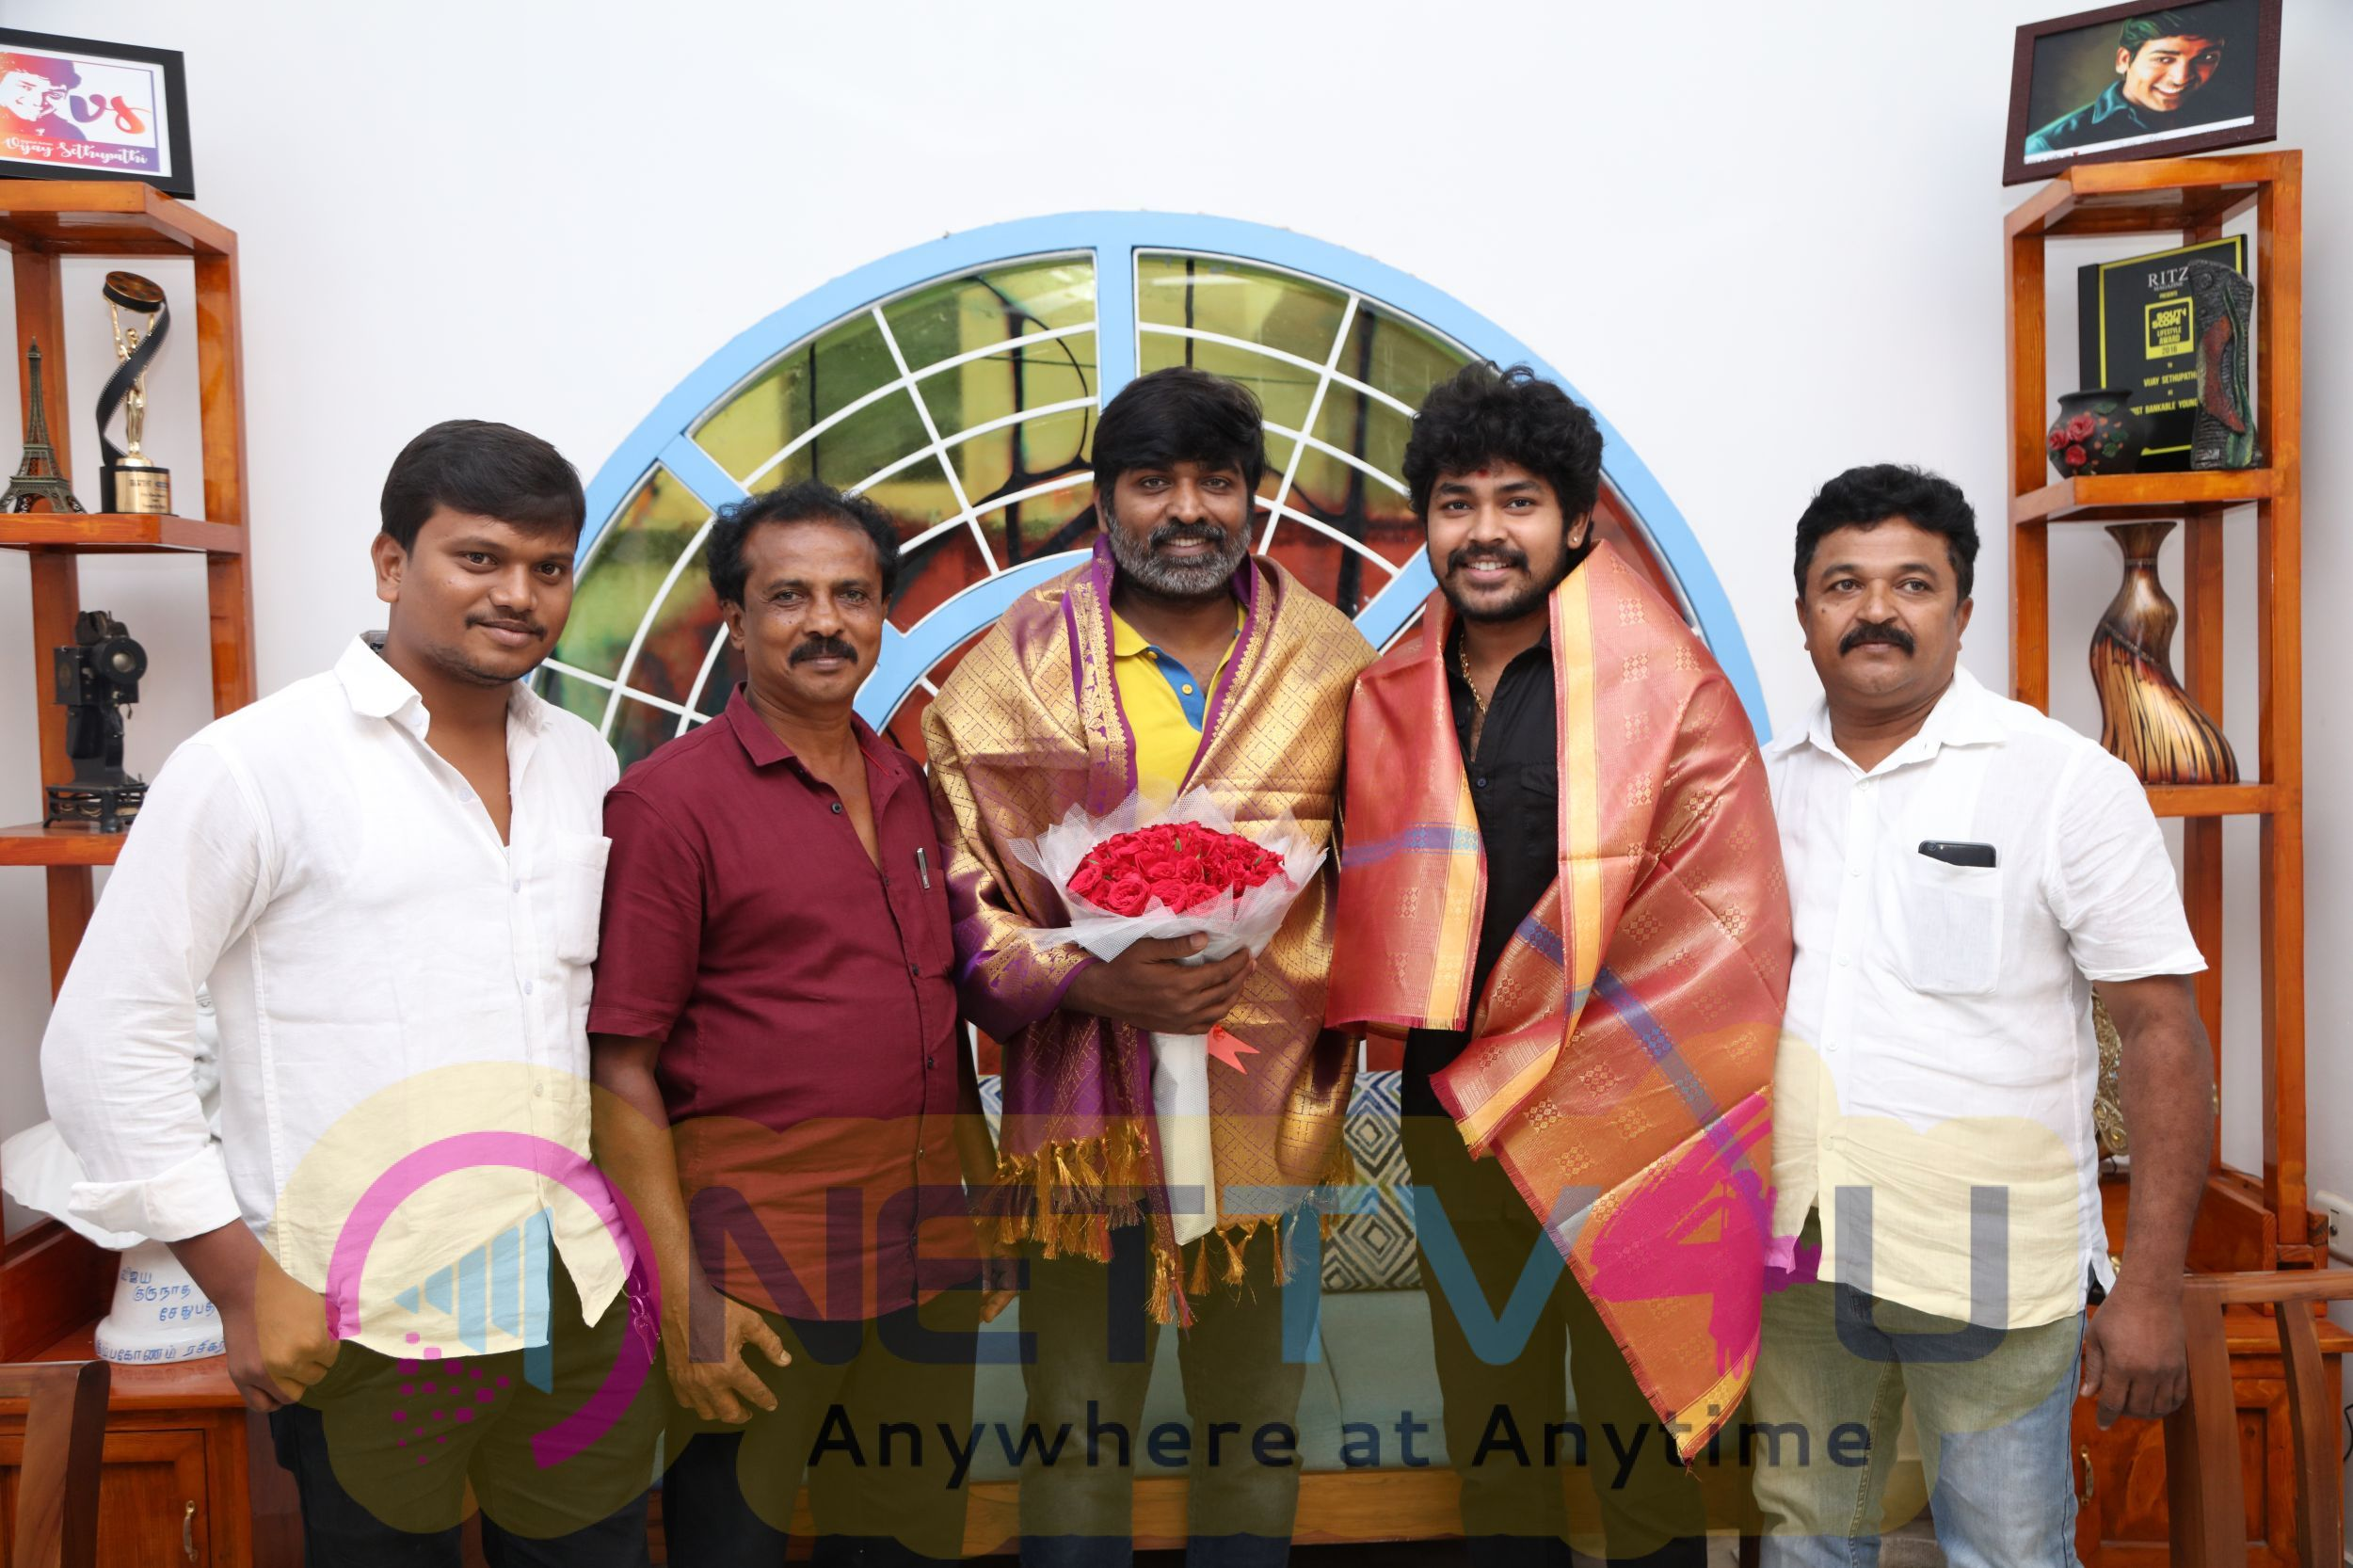 Makkal Selvan Vijay Sethupathi Released The First Look Poster Of Movie Alti Pics